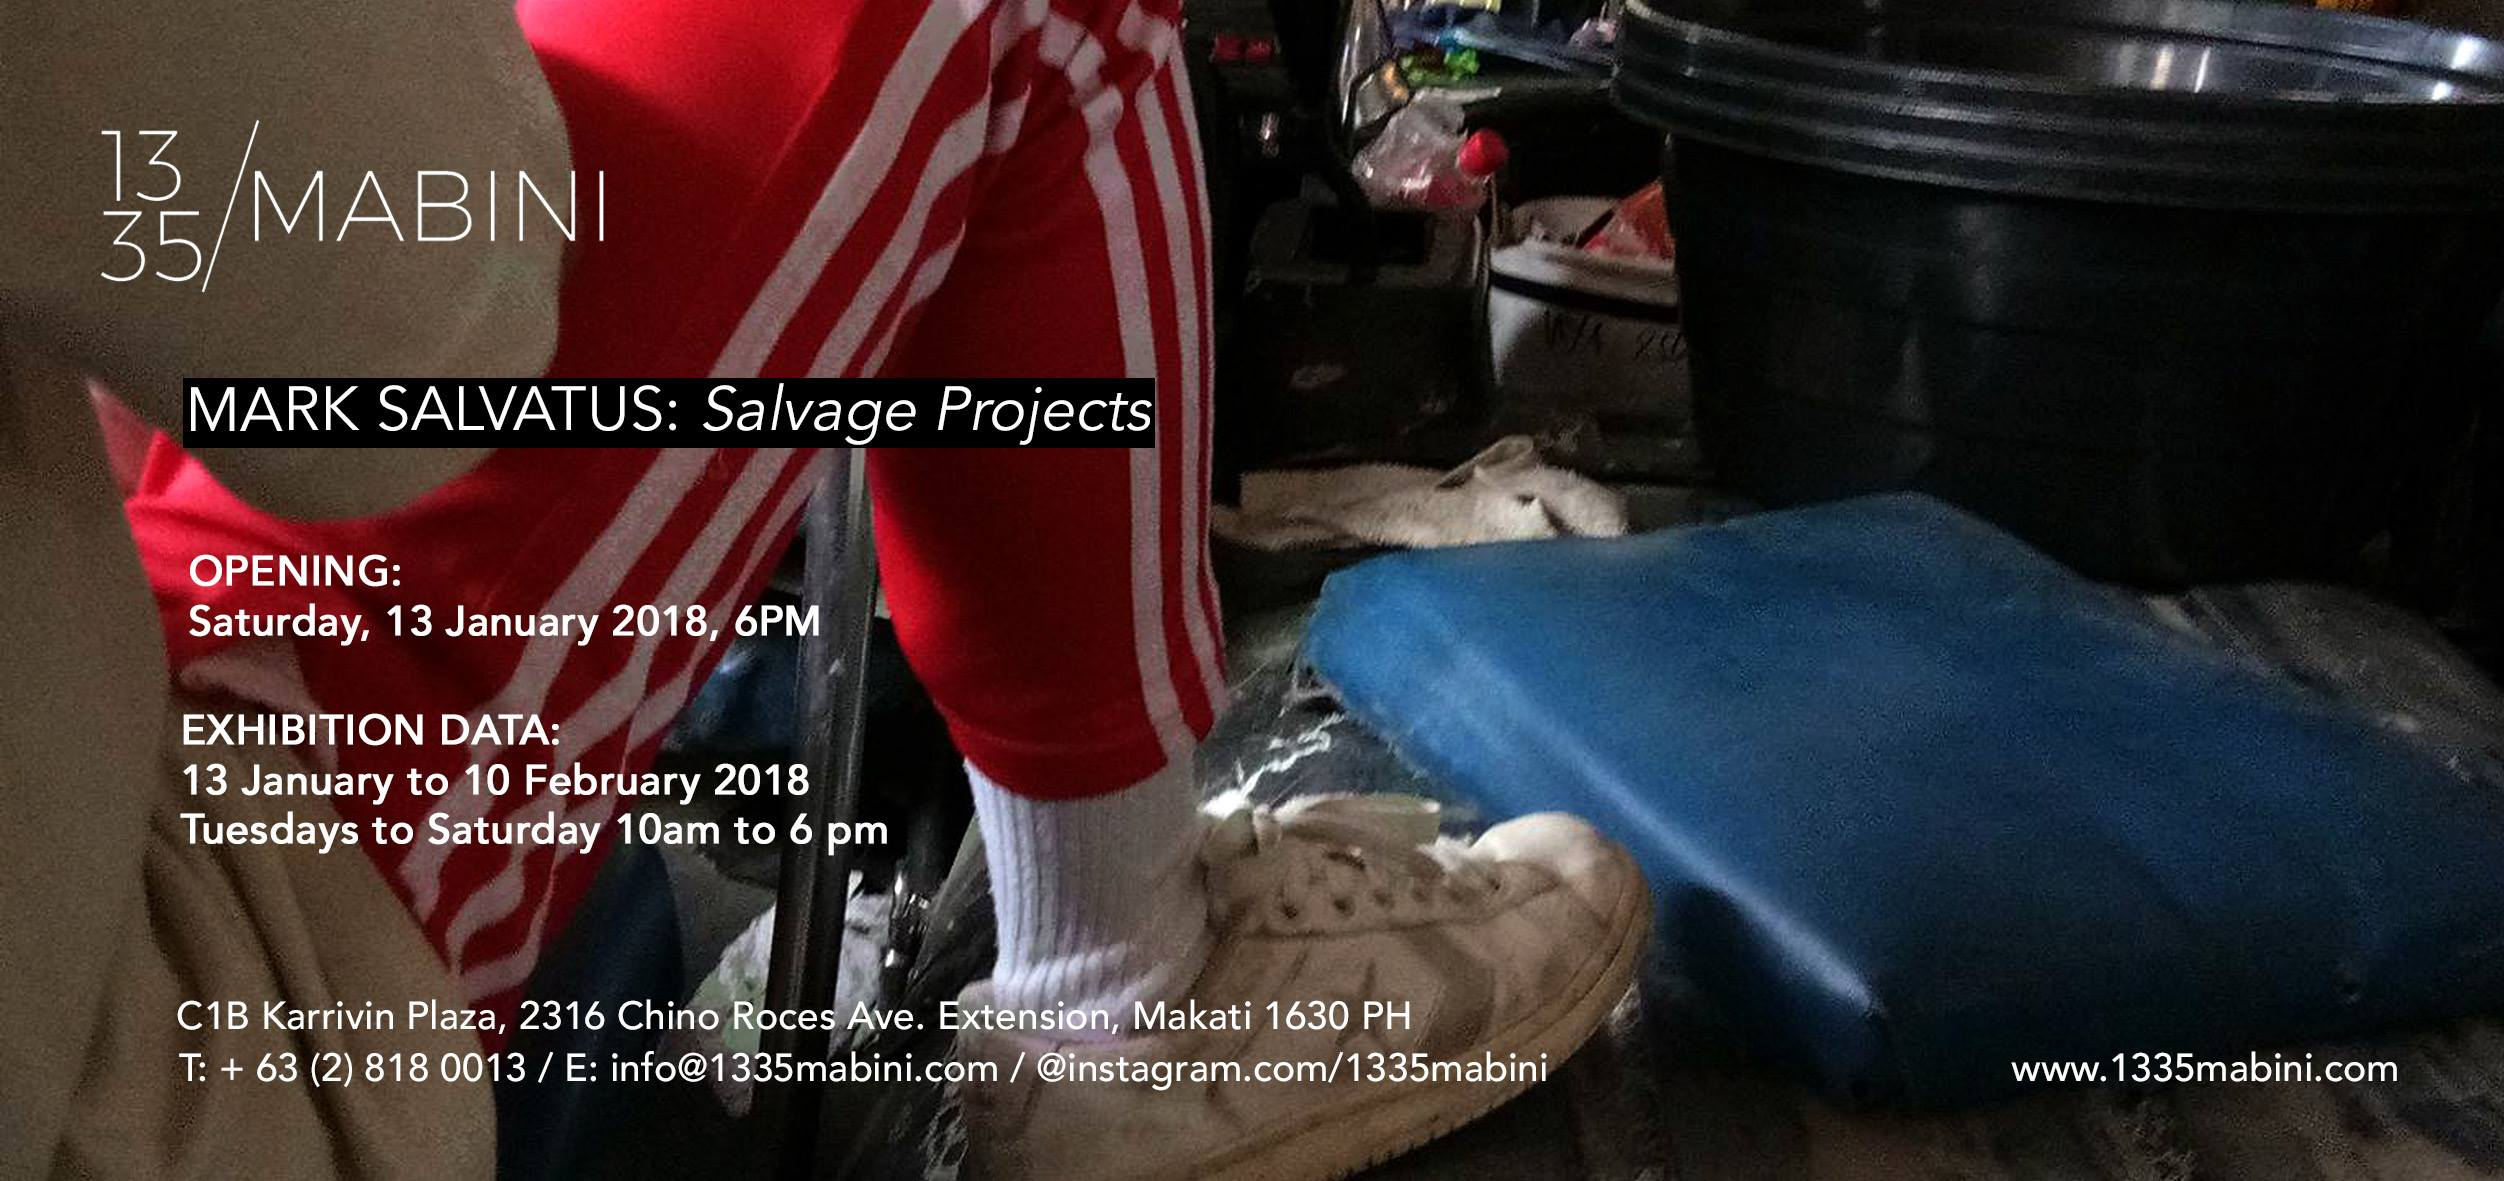 1335mabini/Mark Salvatus: Salvage Projects